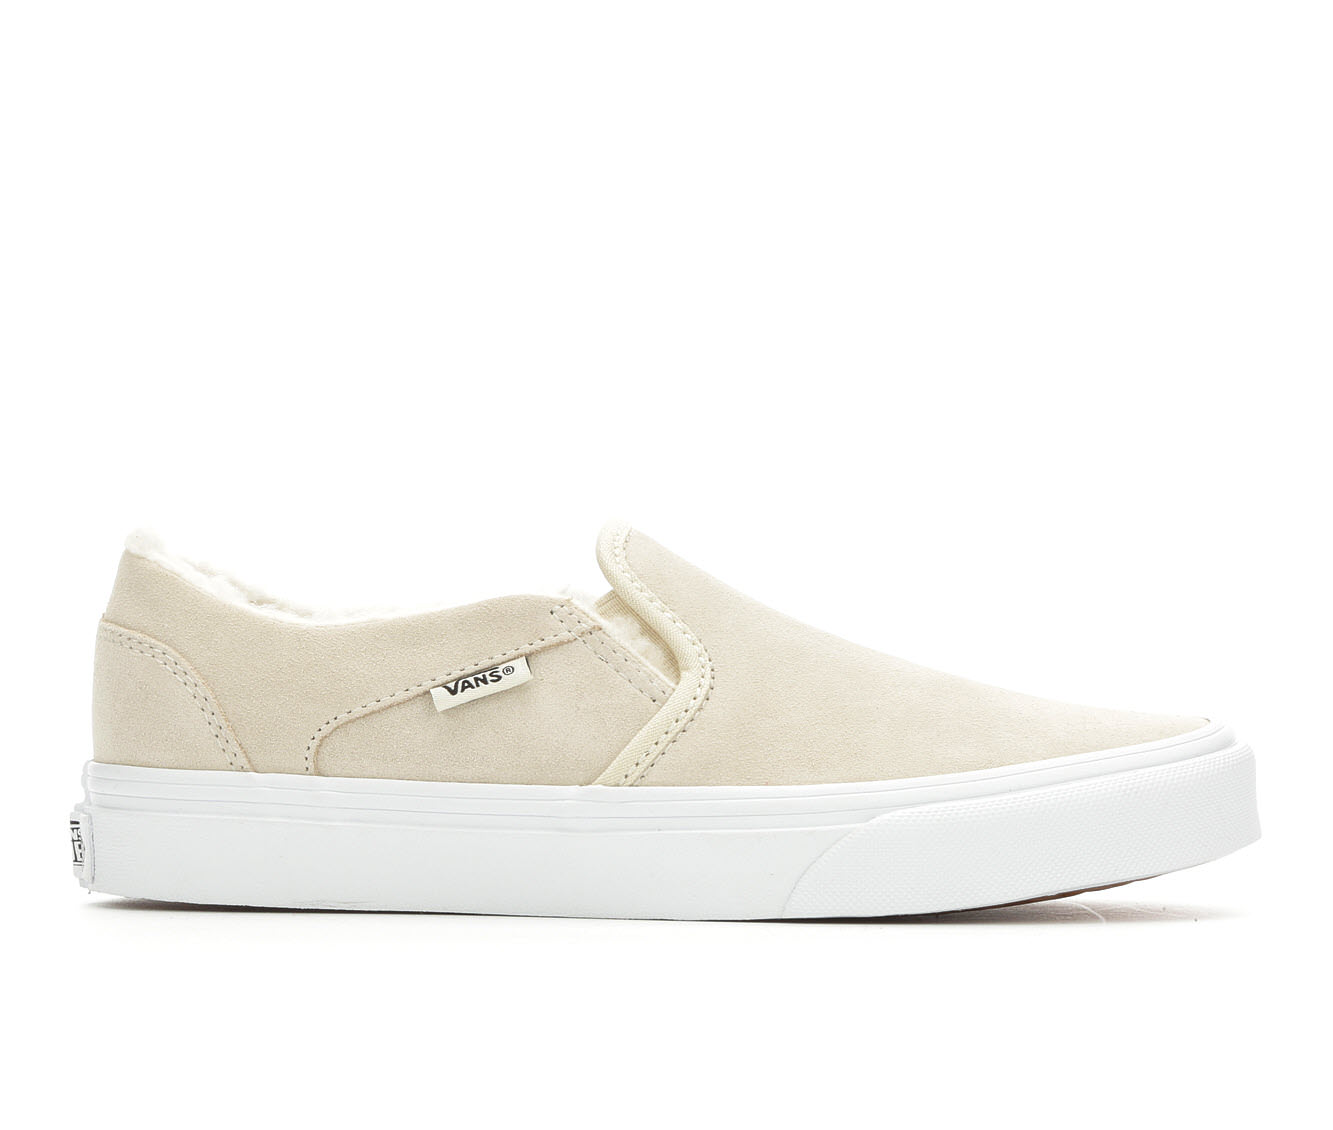 Vans Asher Suede Women's Athletic Shoe (Beige Suede)